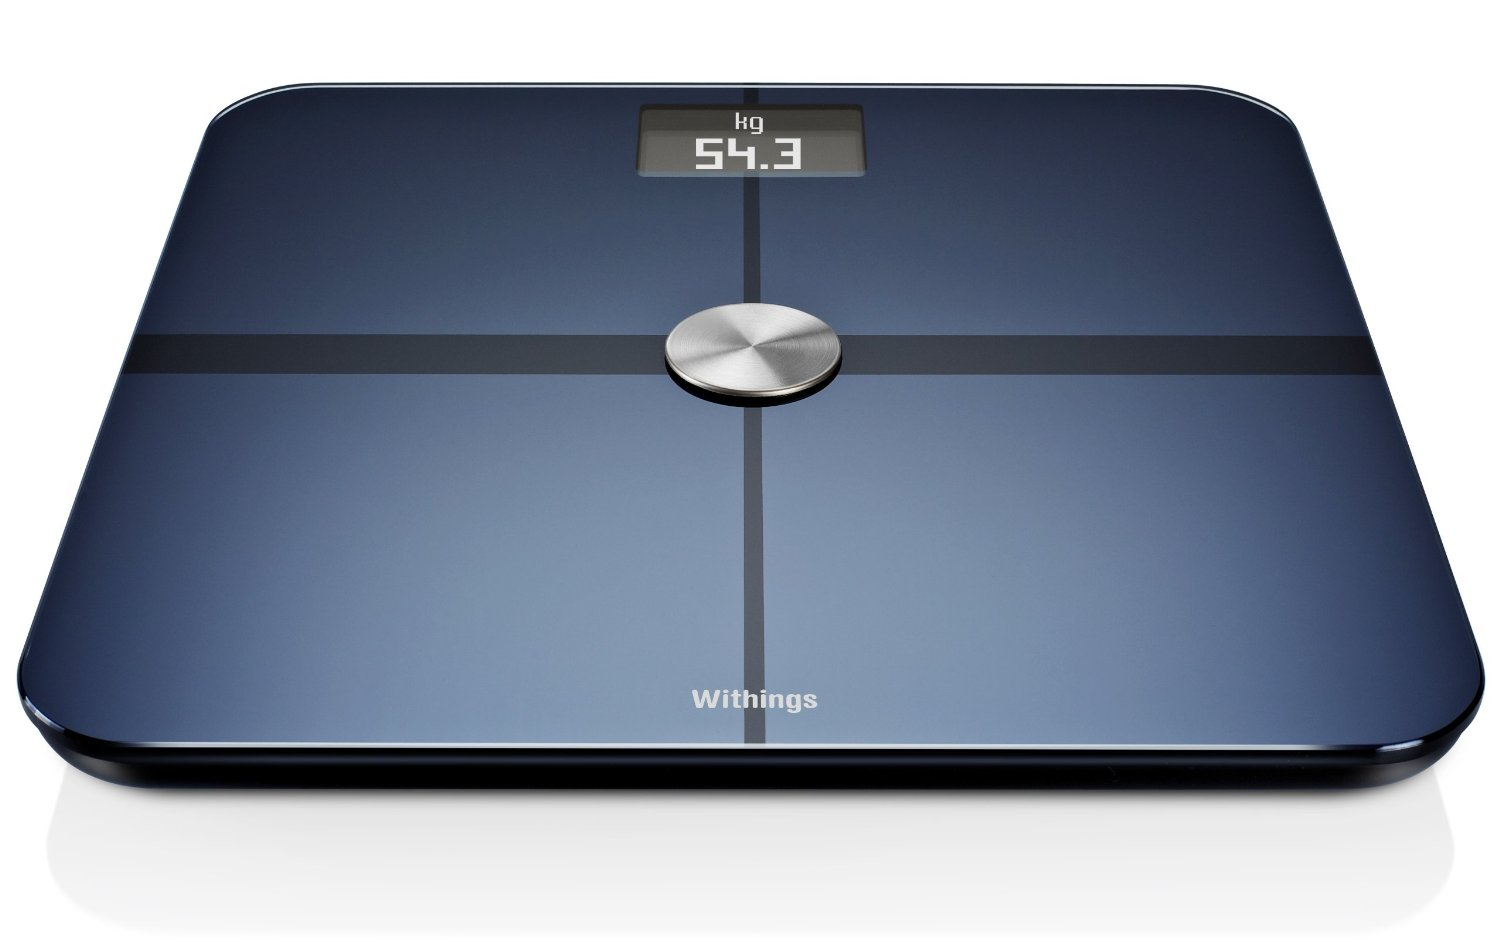 Tithings Smart Body Analyzer